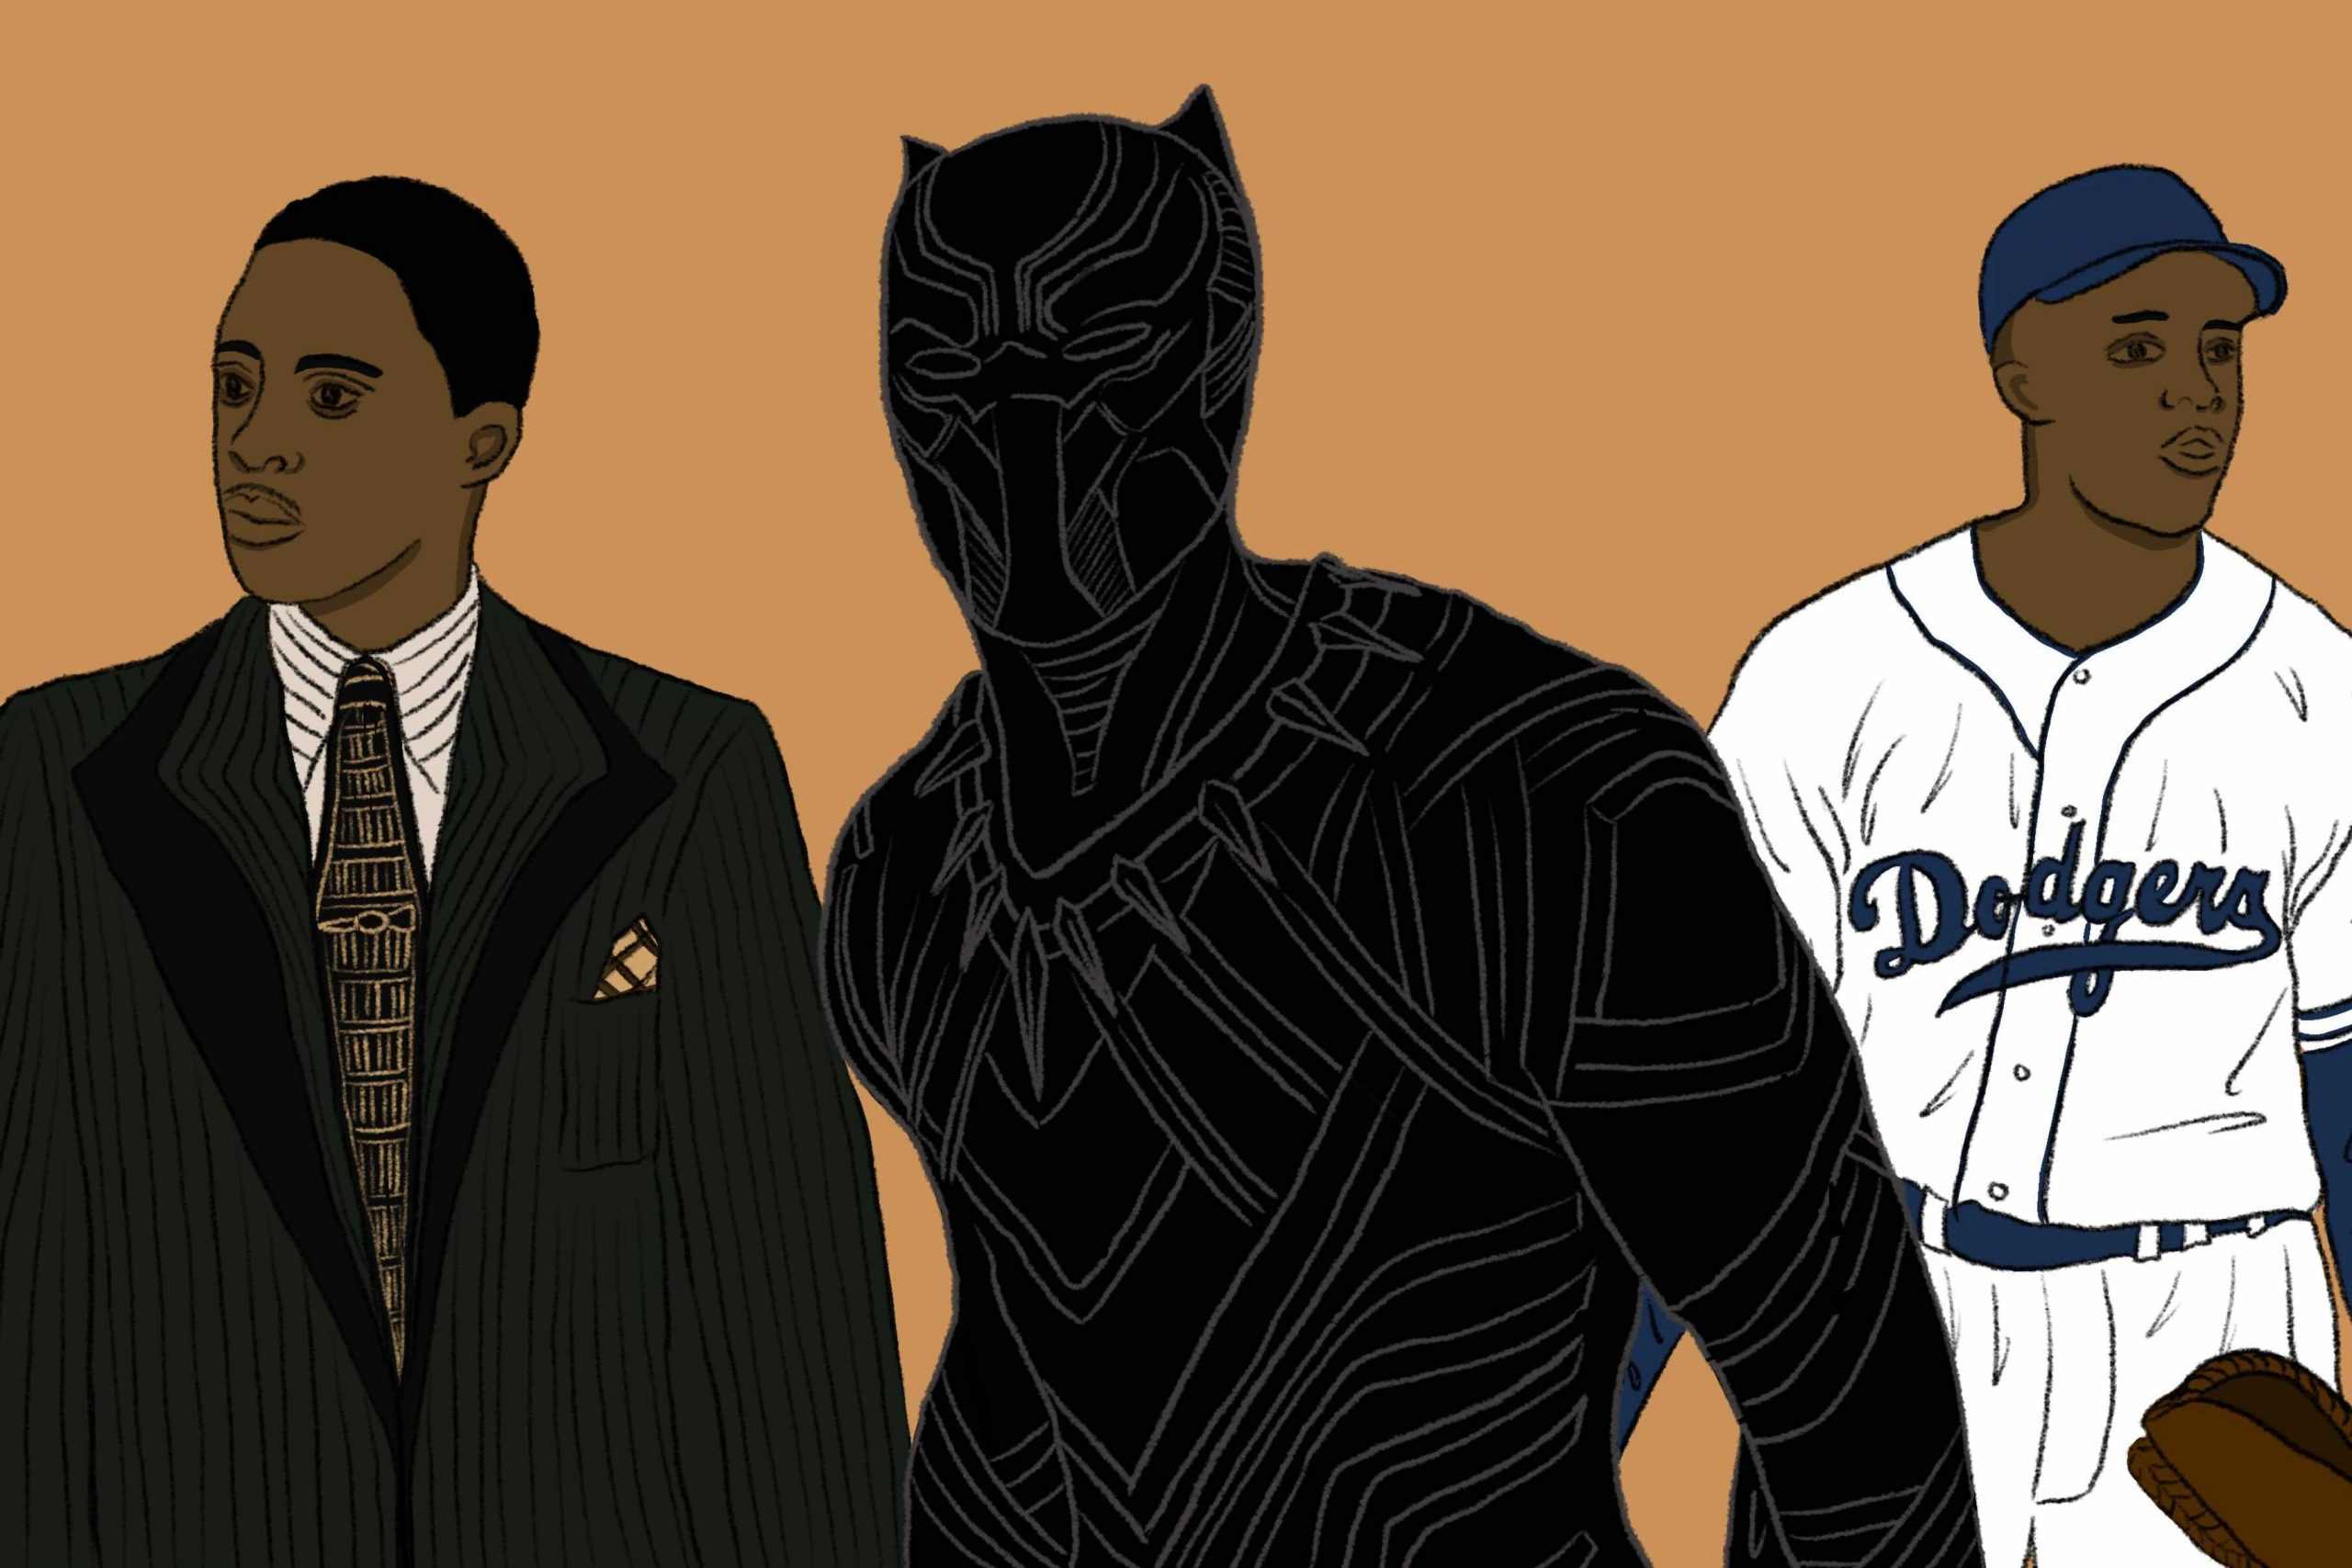 Illustration by June Le for an article on Chadwick Boseman, featuring drawings on Black Panther, Jackie Robinson and Thurgood Marshall